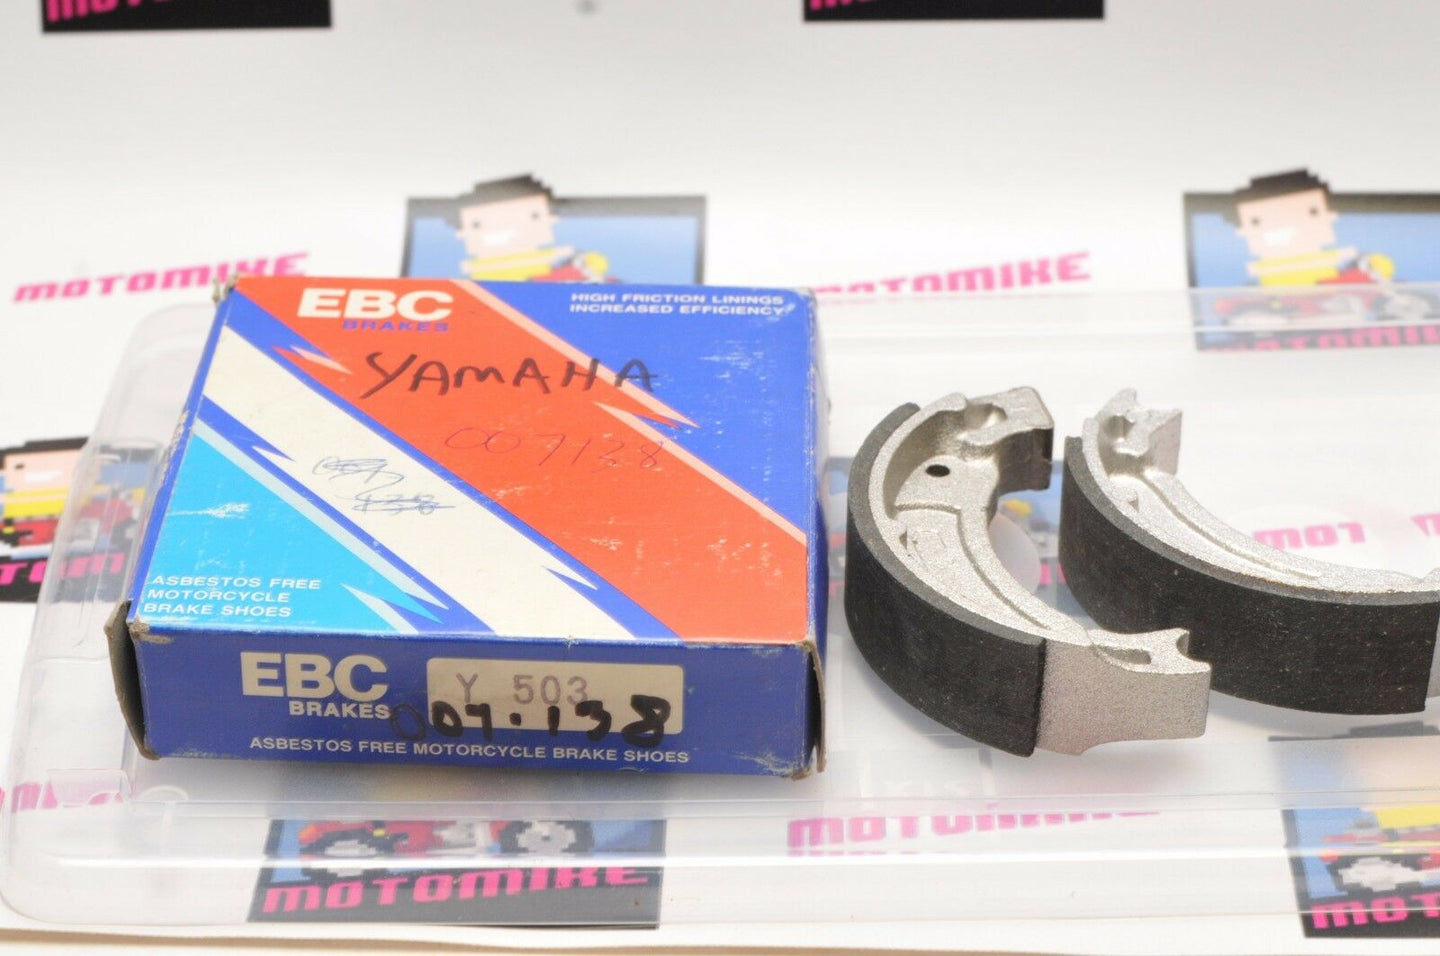 NEW GENUINE EBC Brakes Y503 Y 503 YAMAHA BRAKE SHOES  DT50 TW125 ++ - Motomike Canada